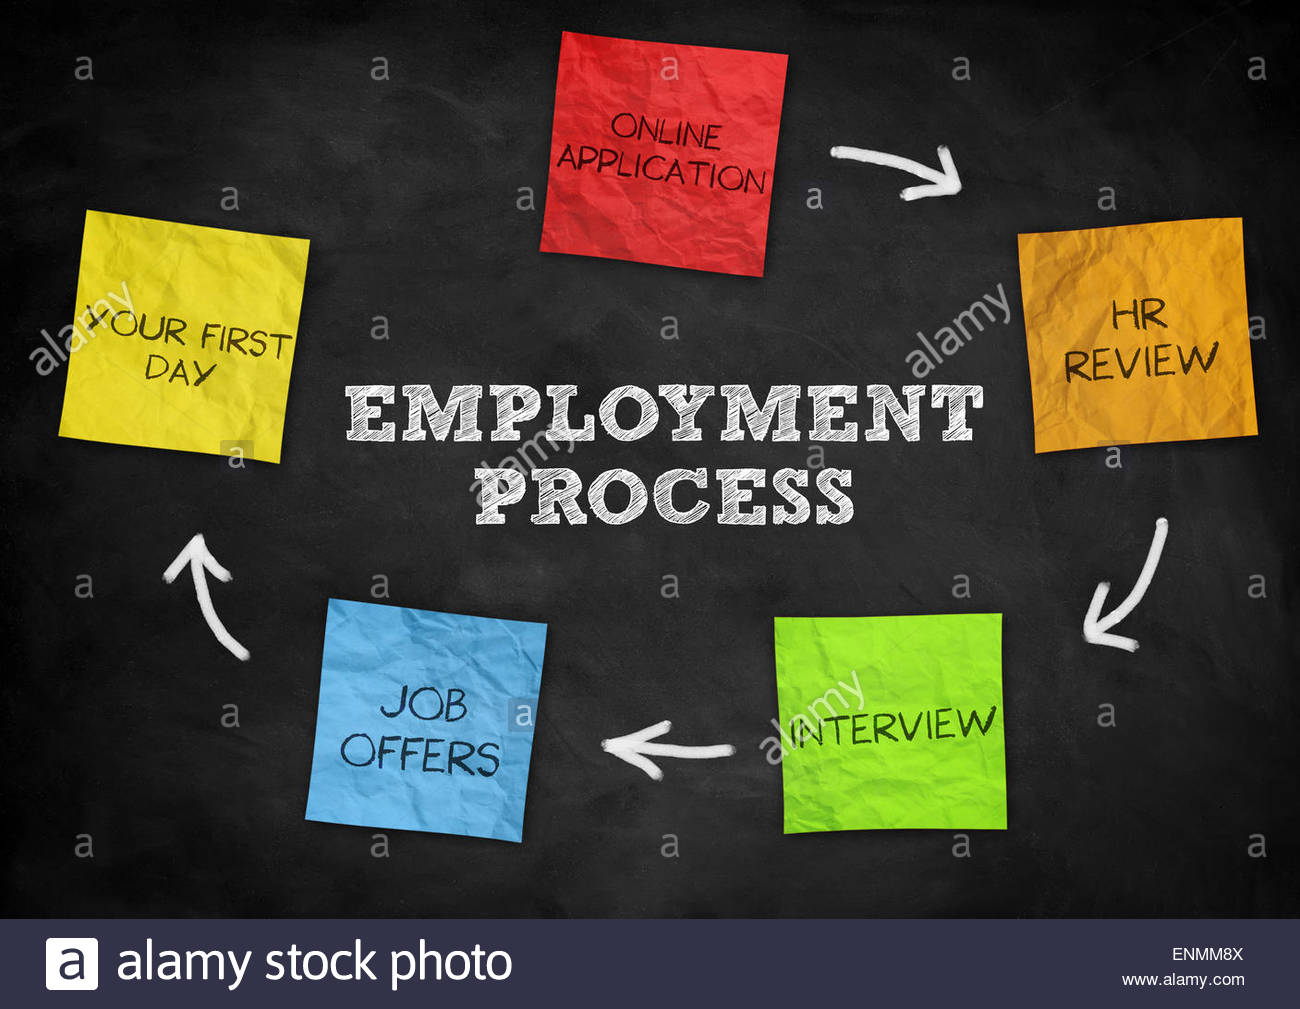 Employment process - Stock Image